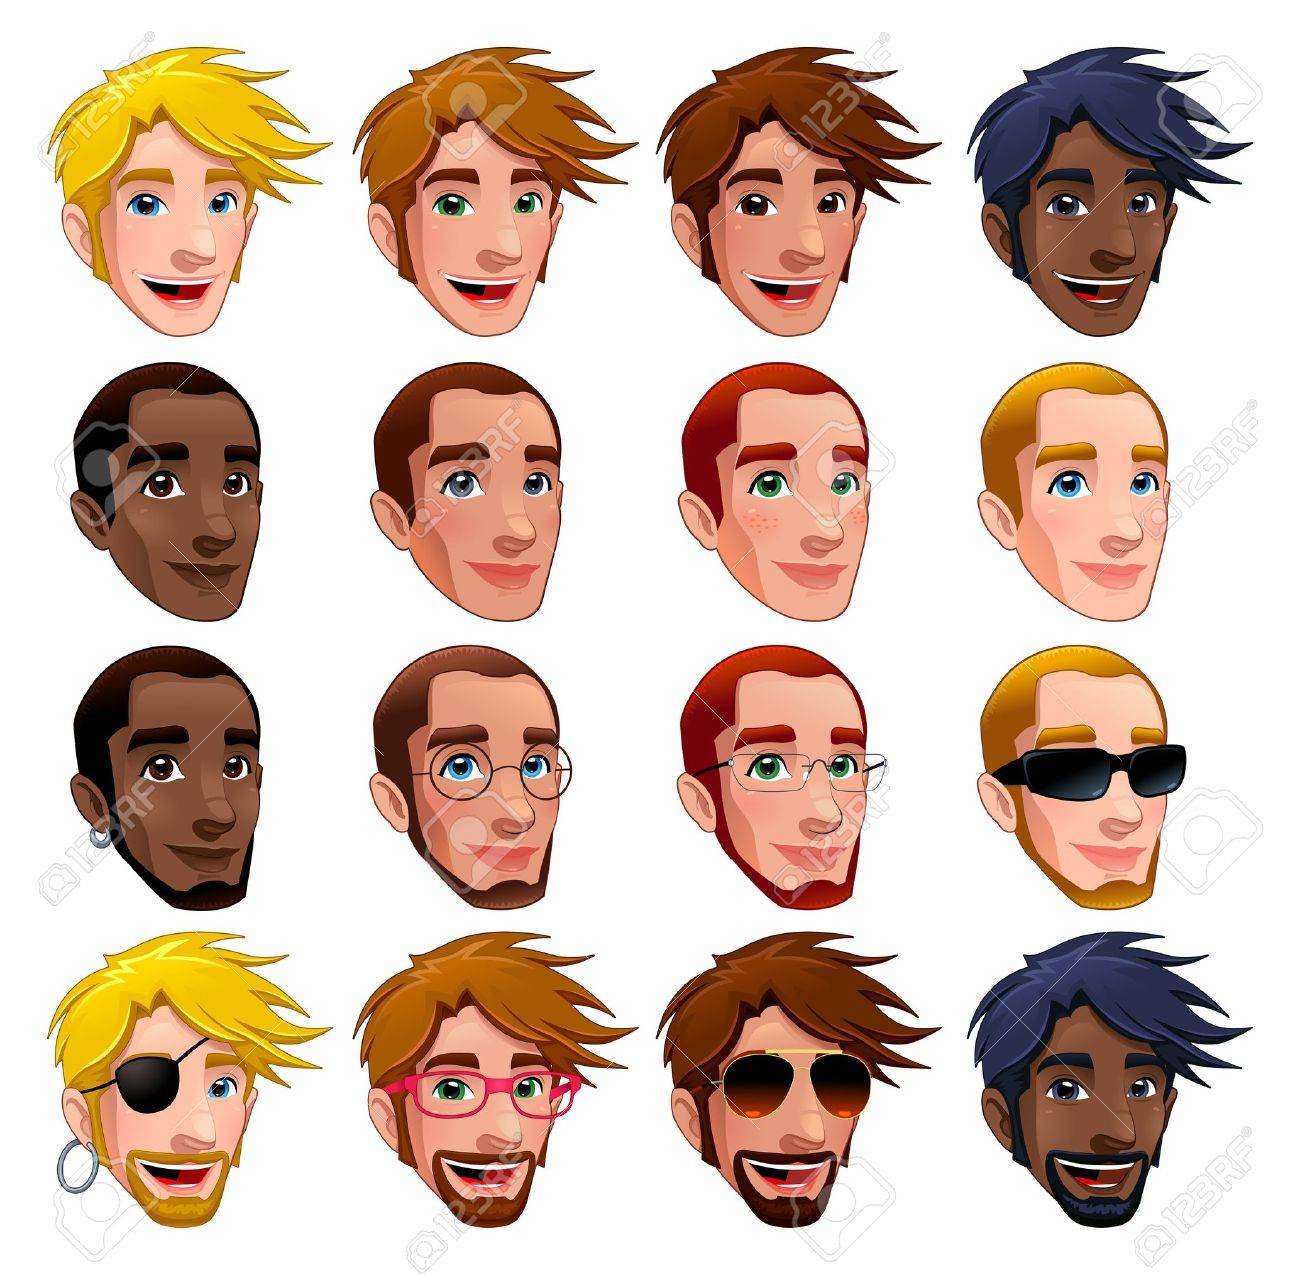 Male faces, isolated characters. Glasses, sunglasses and earrings are isolated and interchangeable. Stock Vector - 16596494